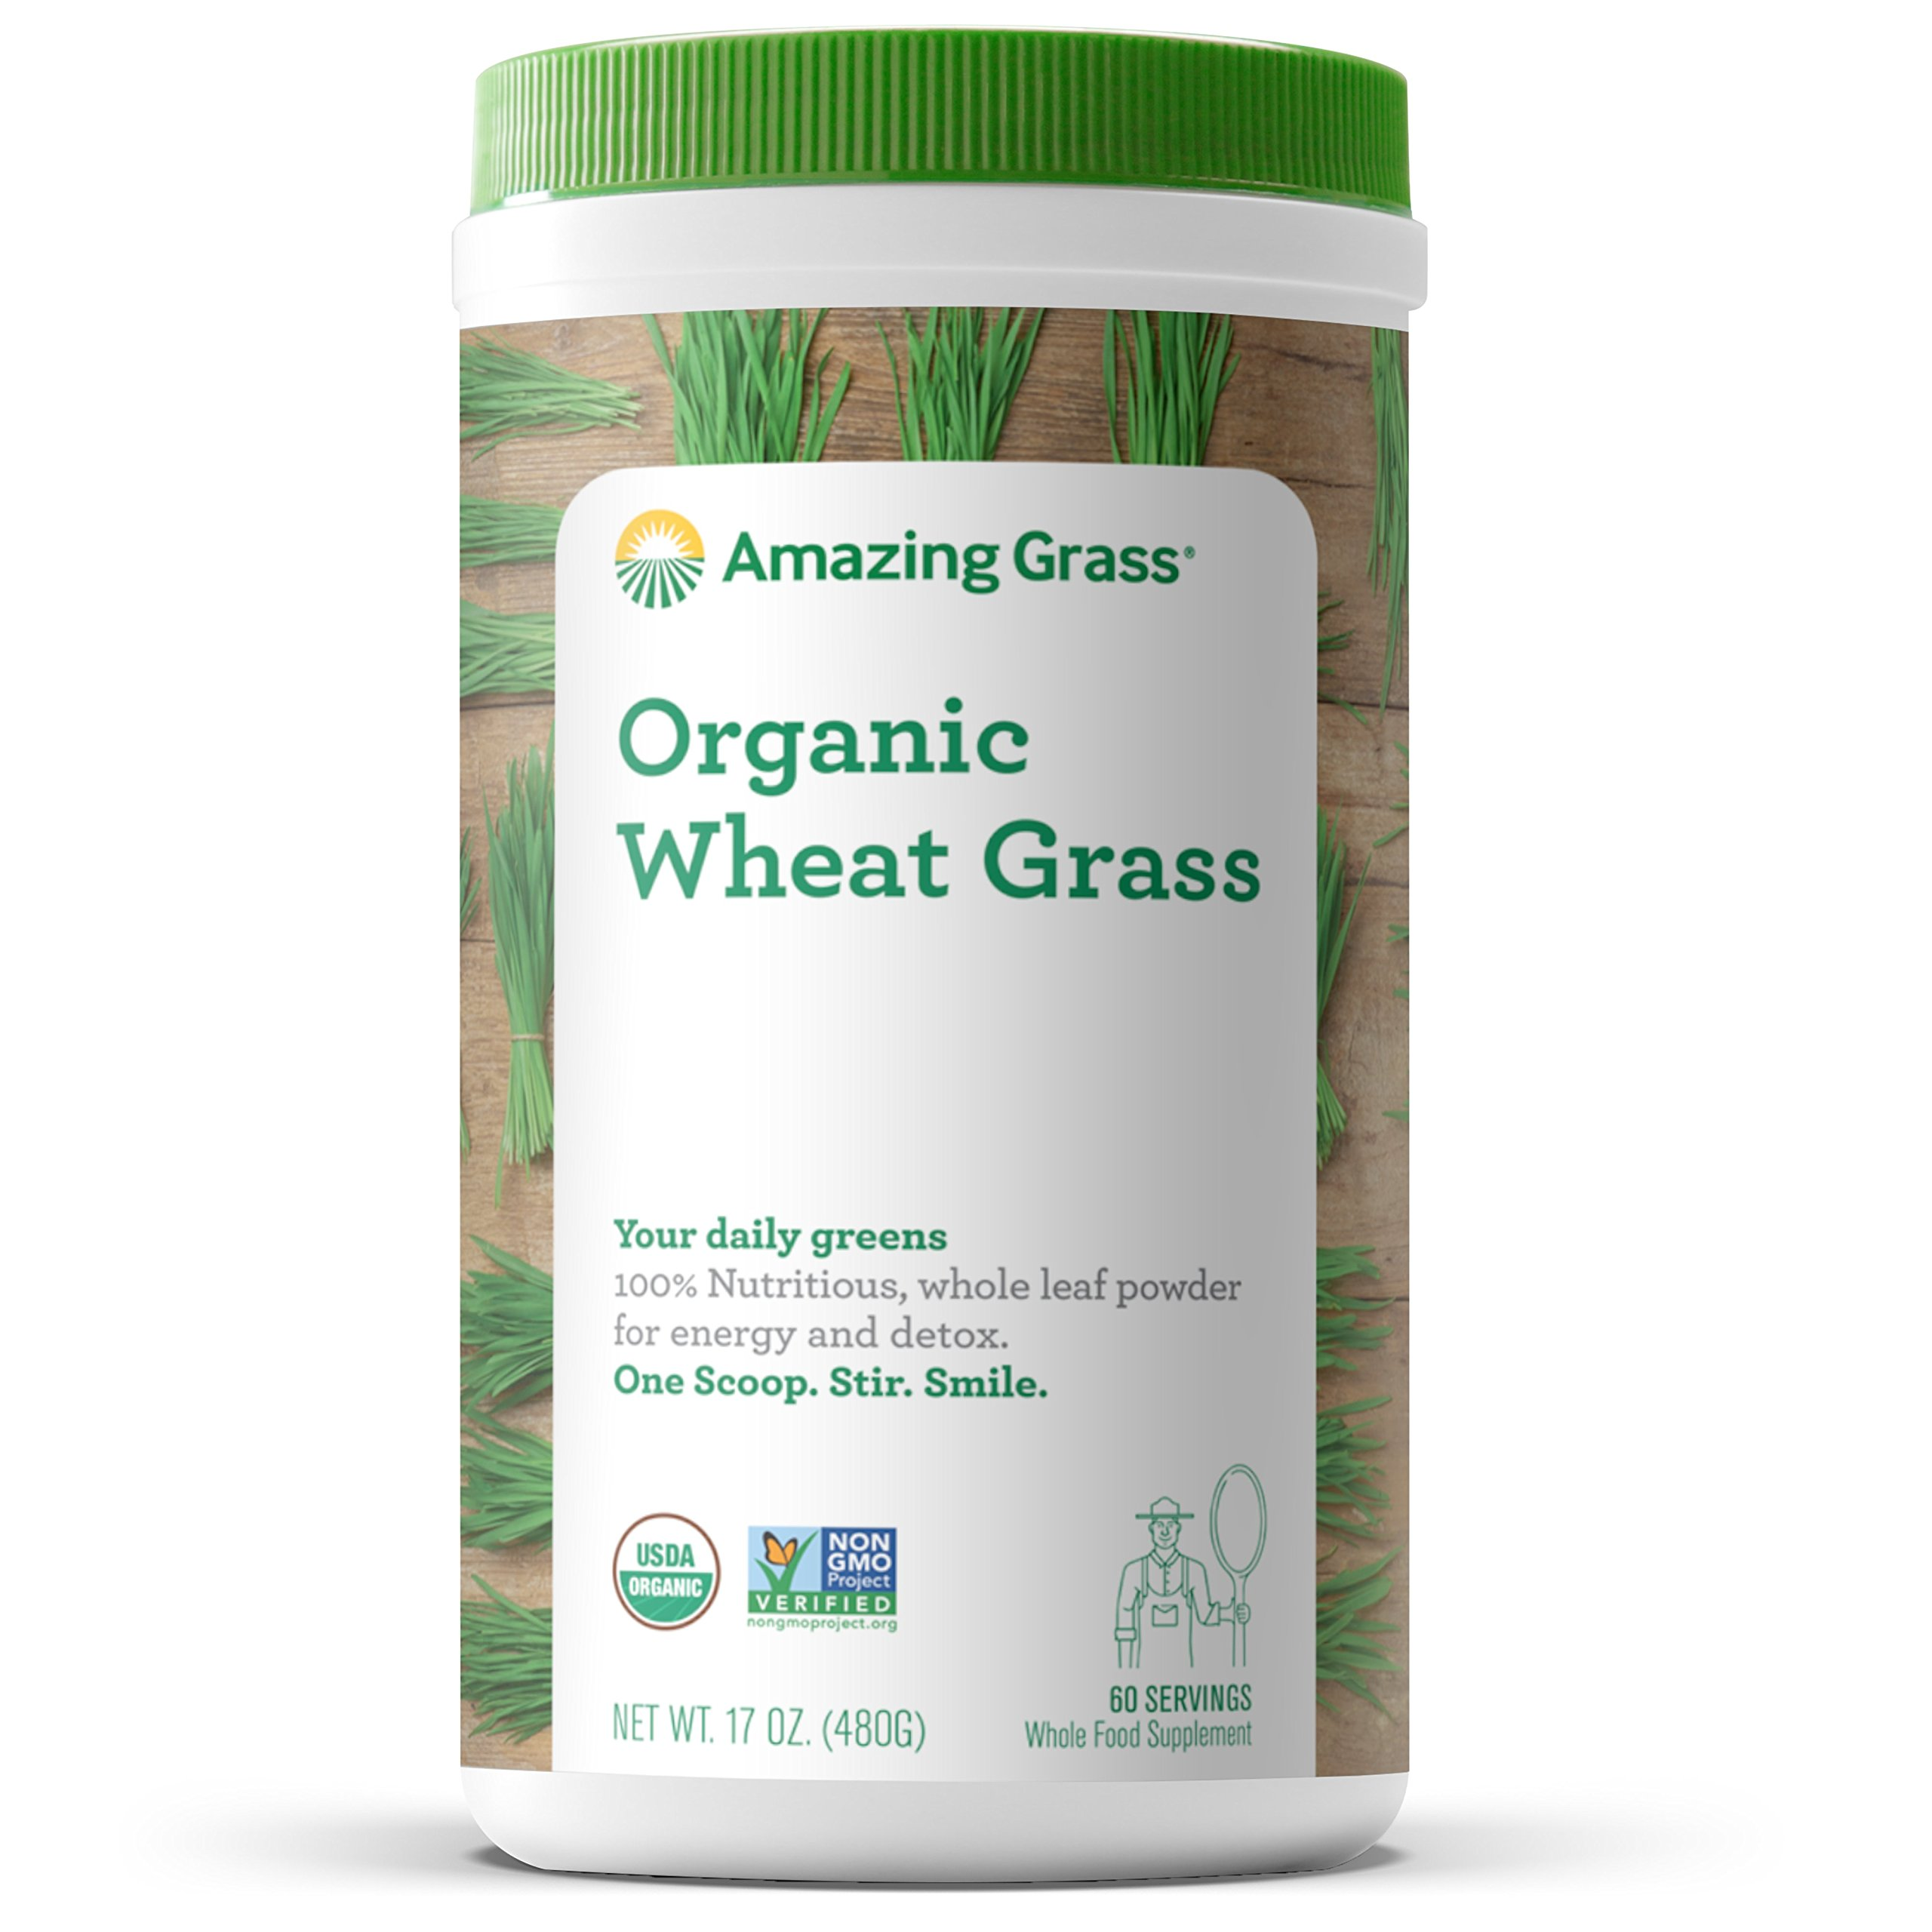 Amazing Grass Organic Wheat Grass Powder, 60 Servings